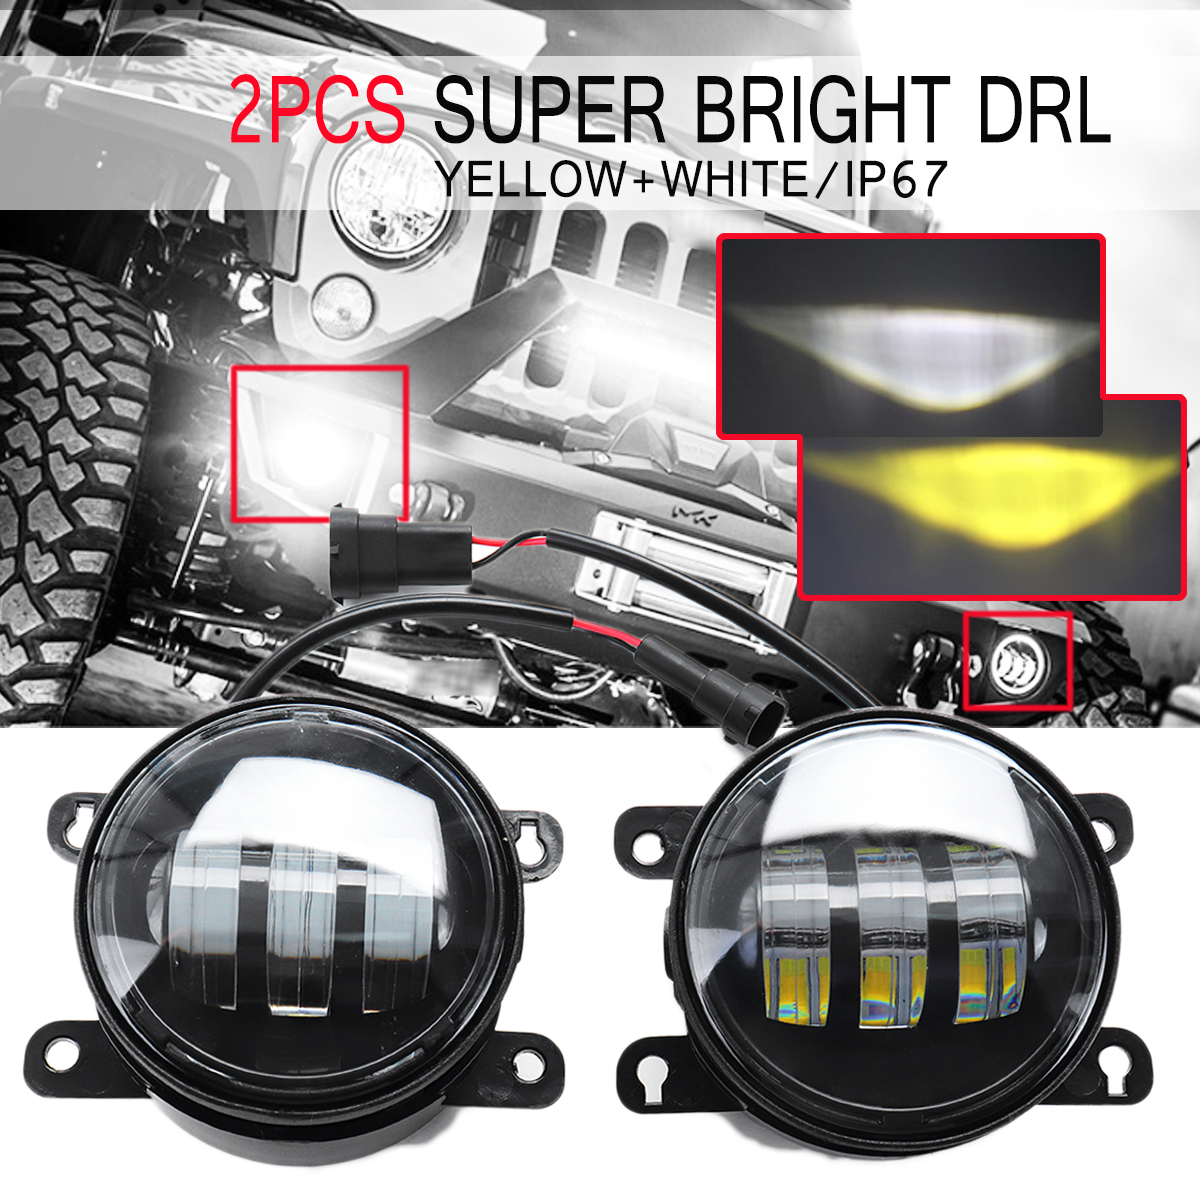 Honda Auto Parts & Accessories Acura OEM DRL Daytime Running Lights Module/Controller/Relay